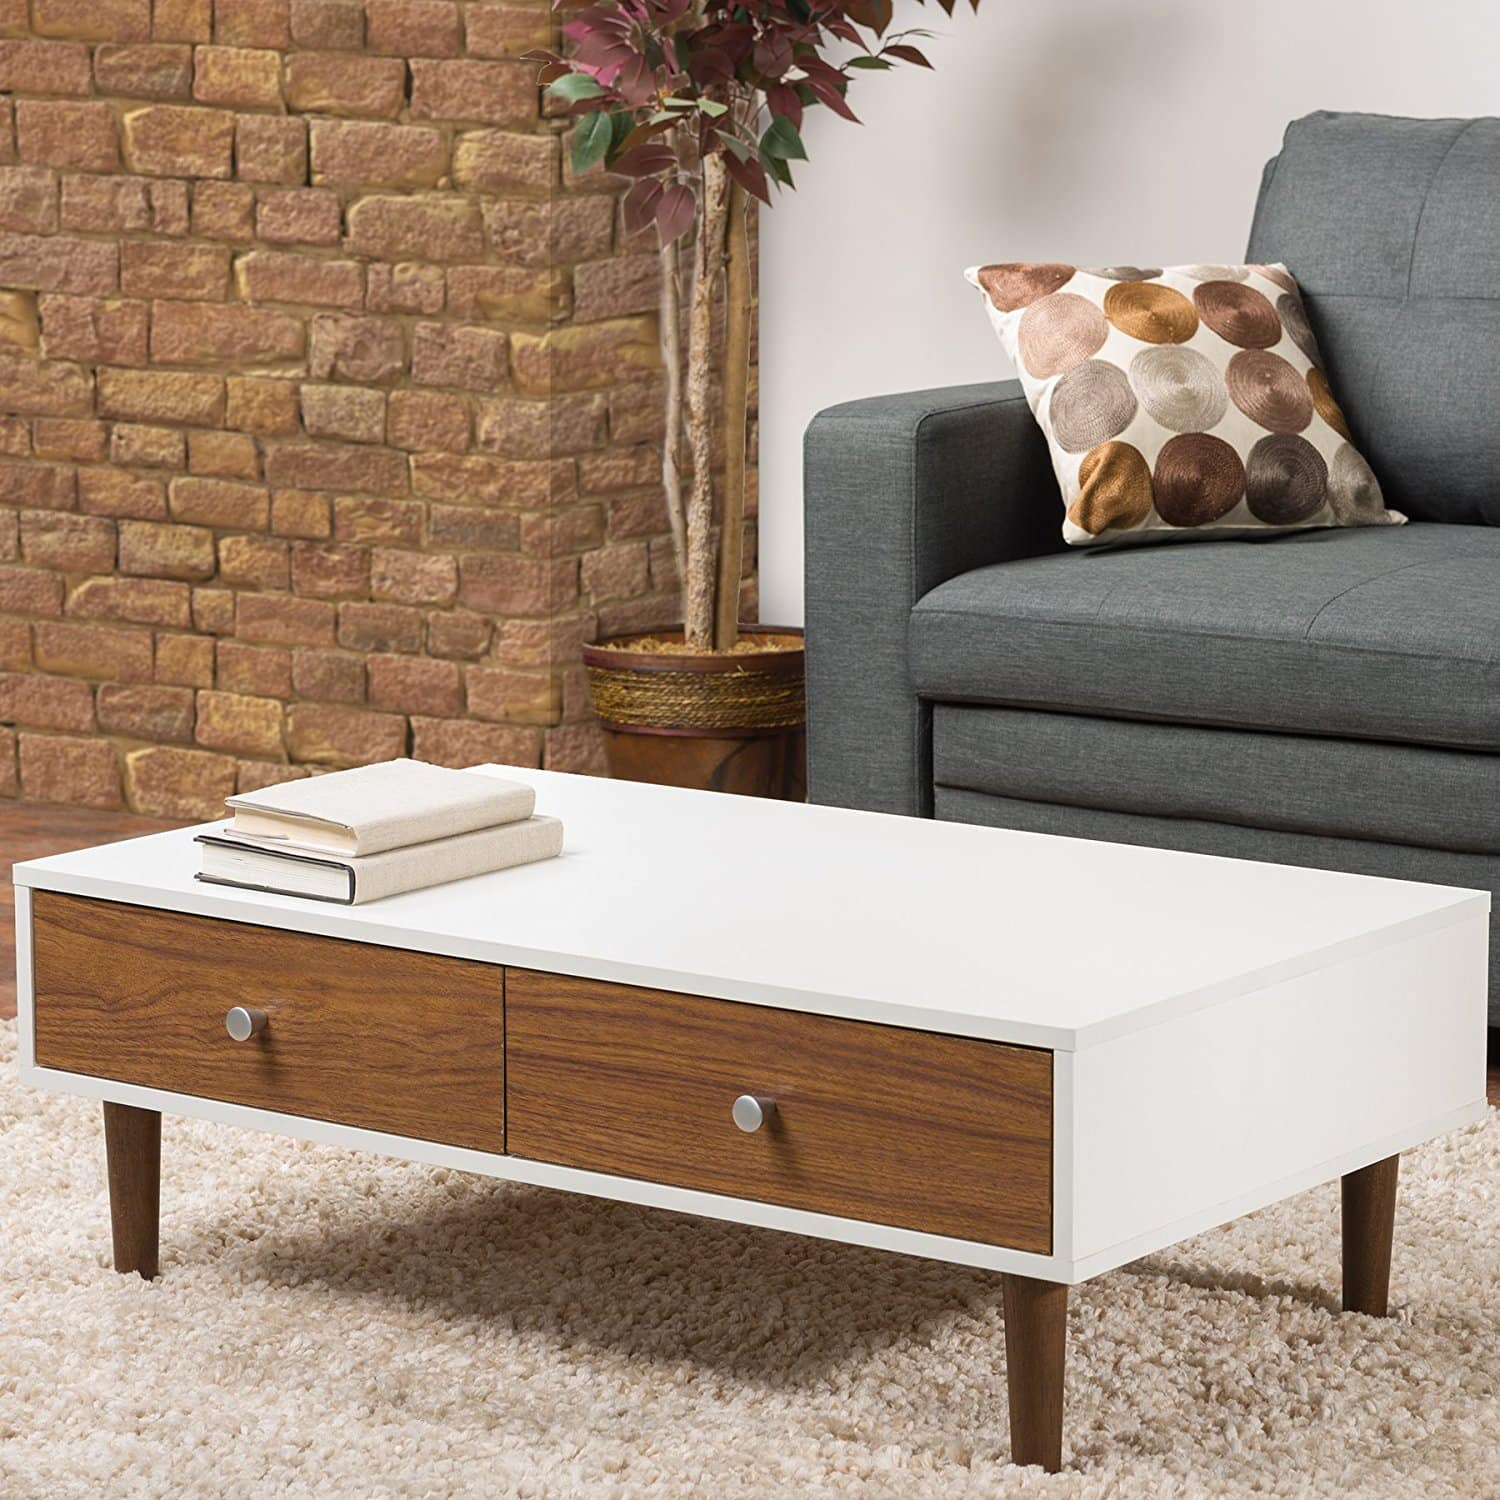 Cheap coffee tables under 100 that work for every style for Modern living room no coffee table